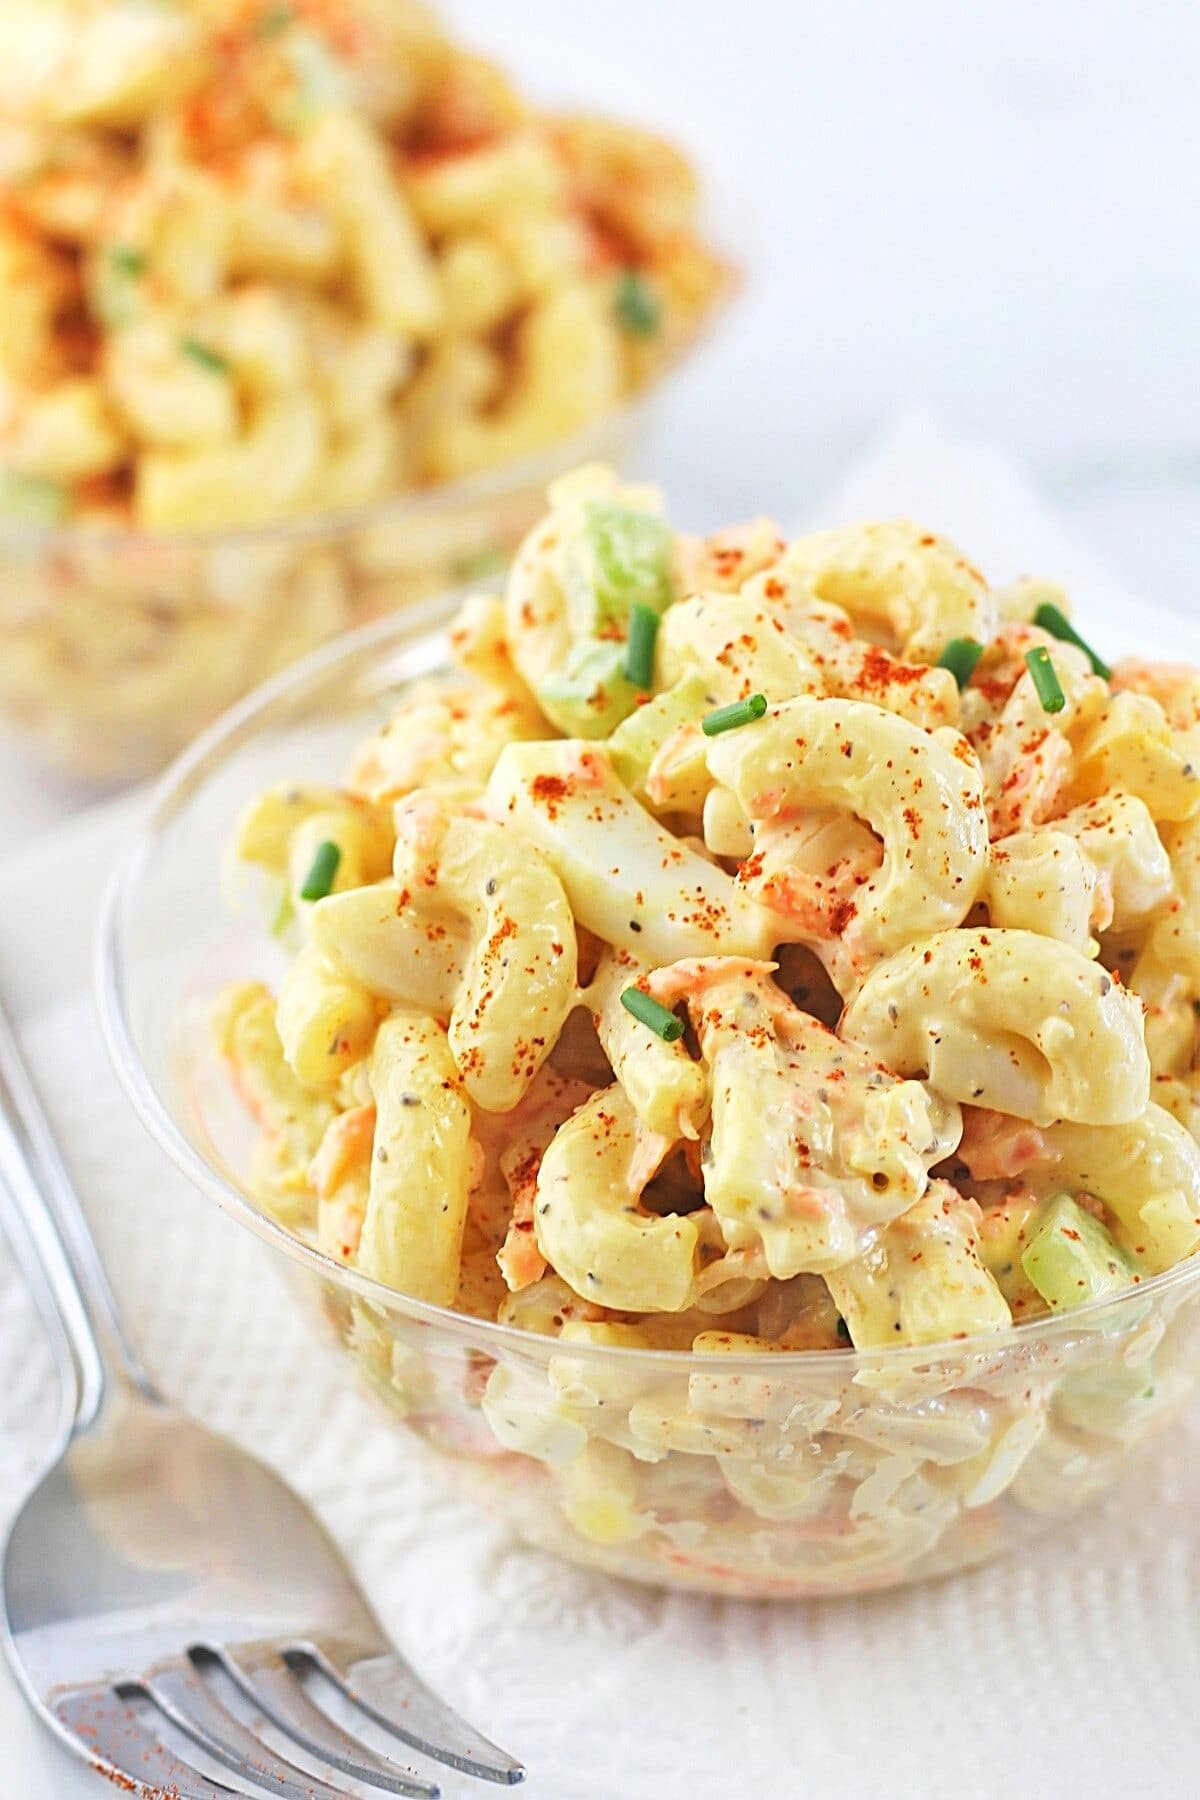 two small bowls of classic creamy macaroni salad with a fork on the side